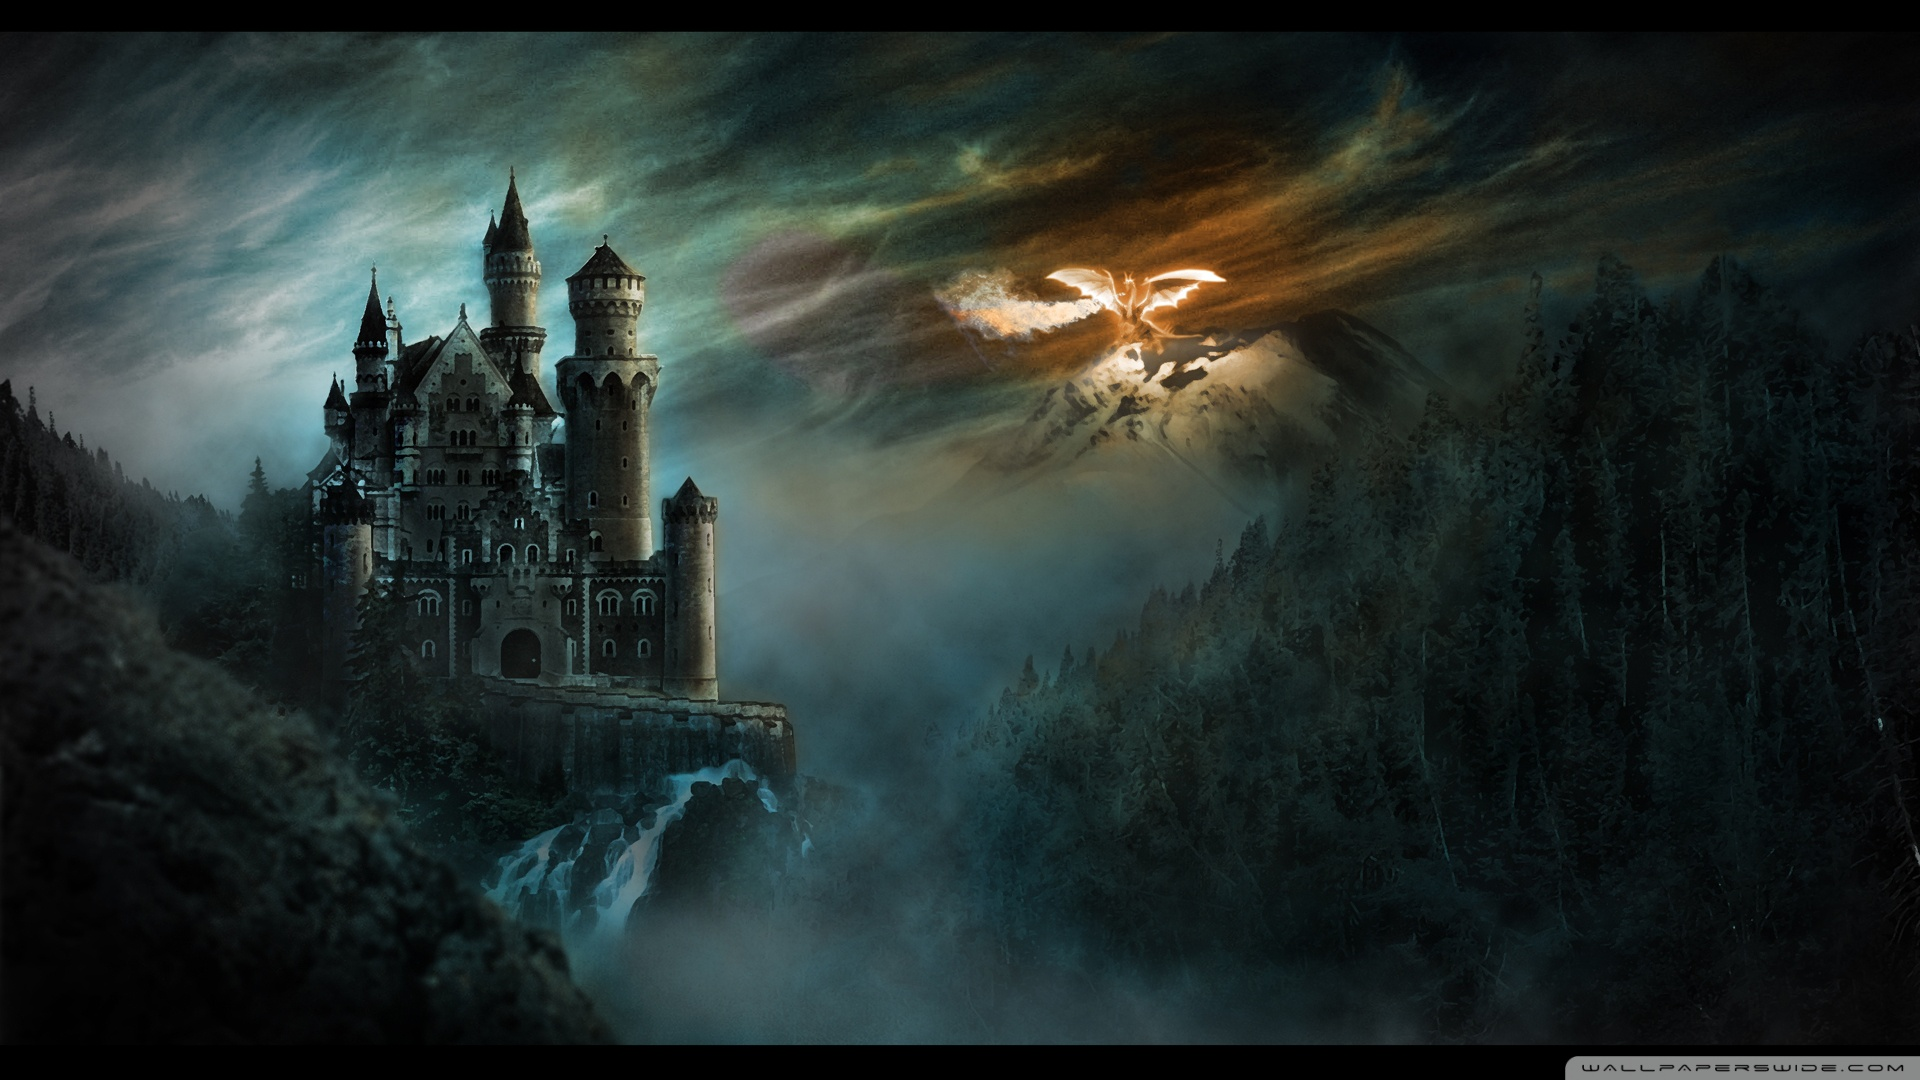 Dragon Siege Wallpaper 1920x1080 Dragon Siege 1920x1080